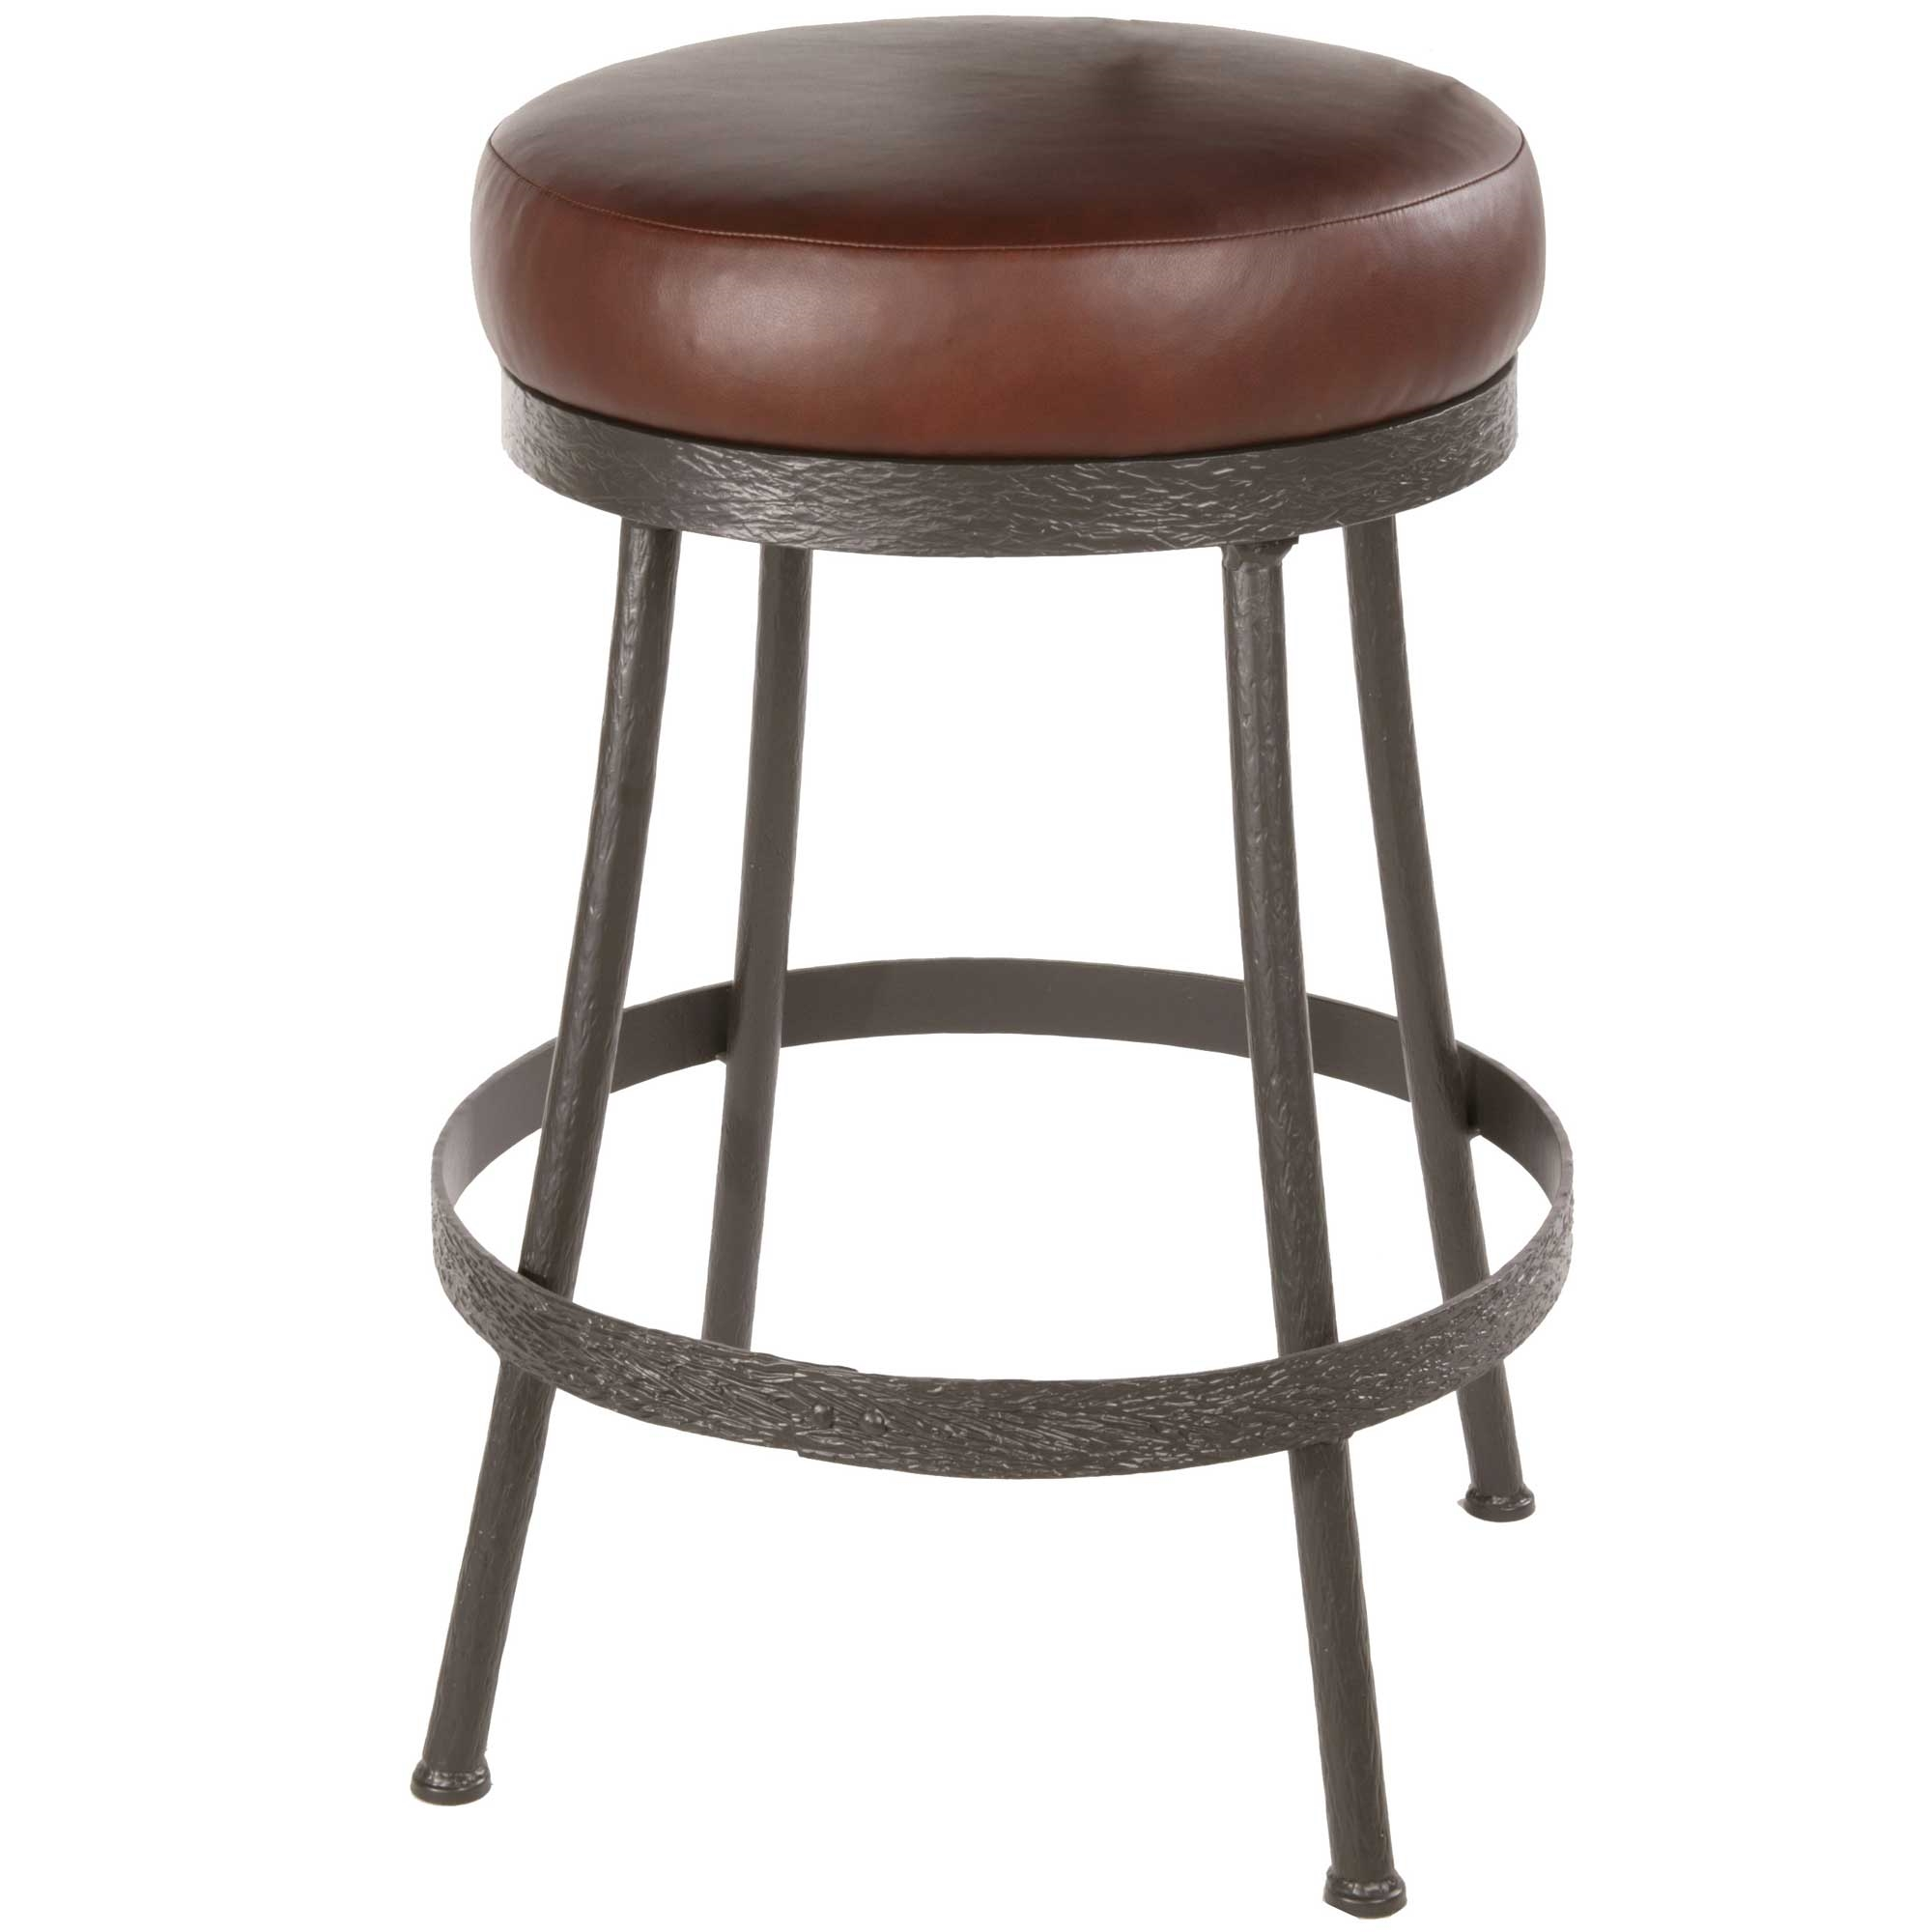 Pictured here is the backless cedarvale counter stool with